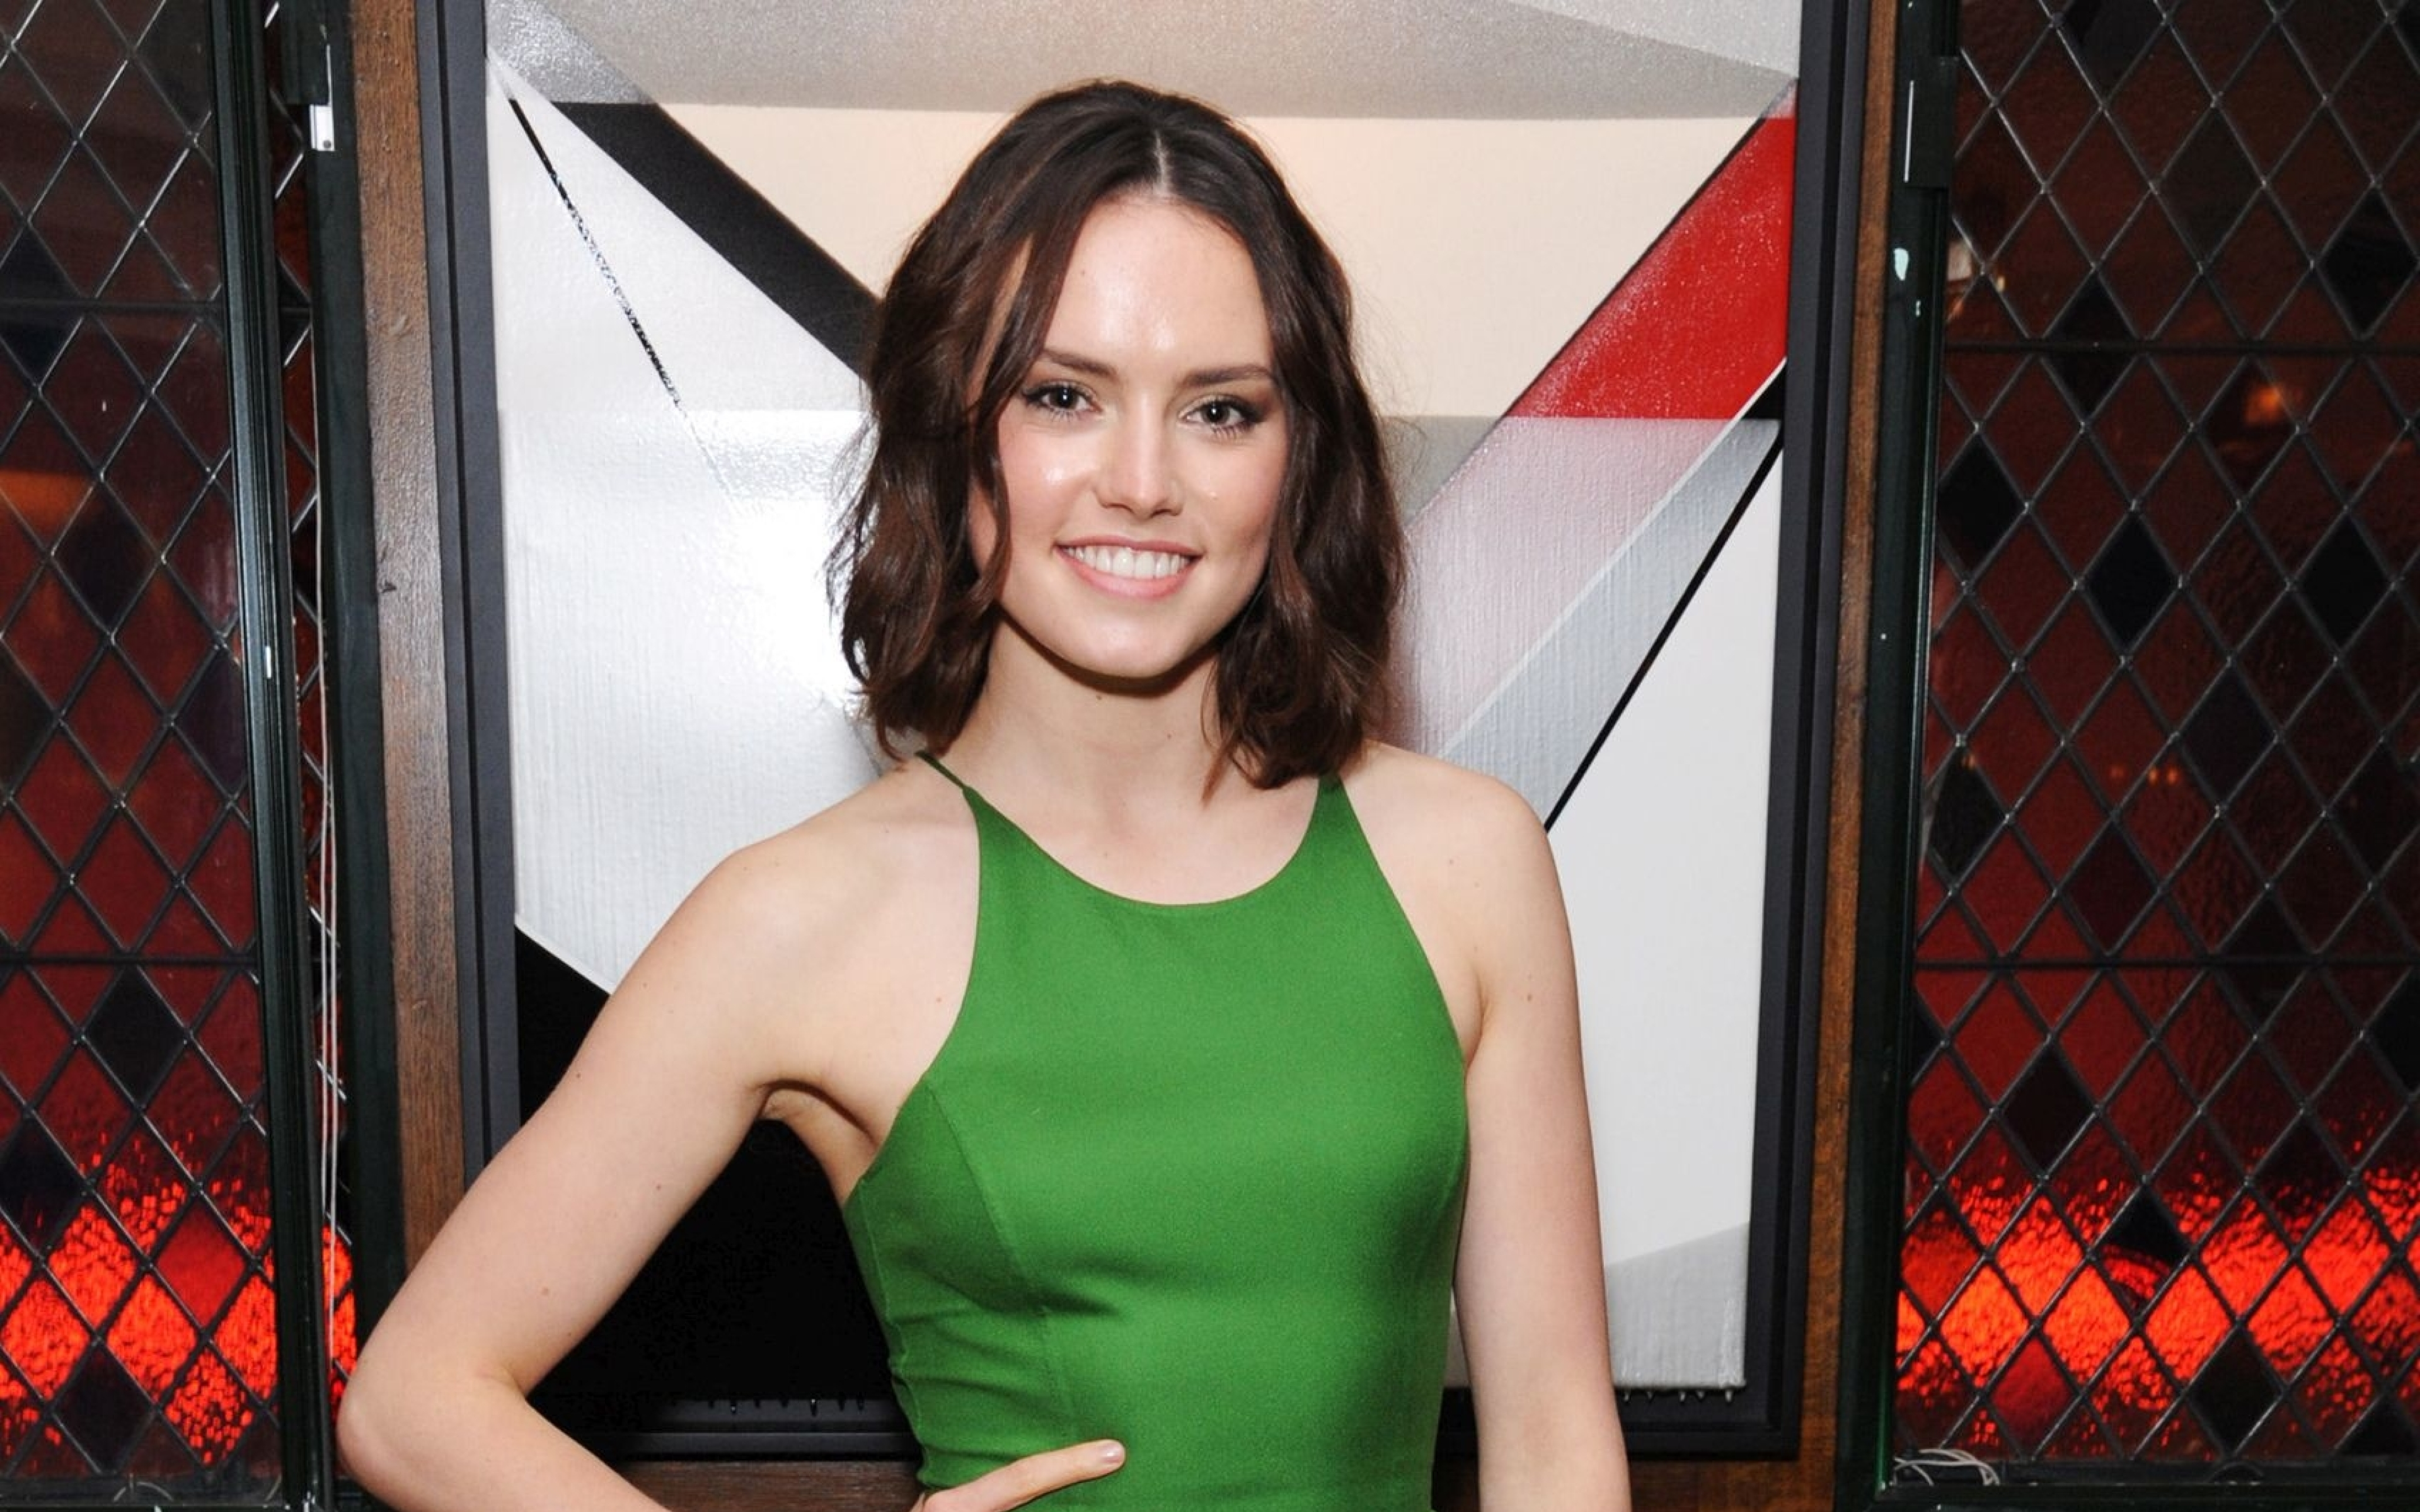 Download Daisy Ridley Smiling In Green Dress 3840x2400 Resolution